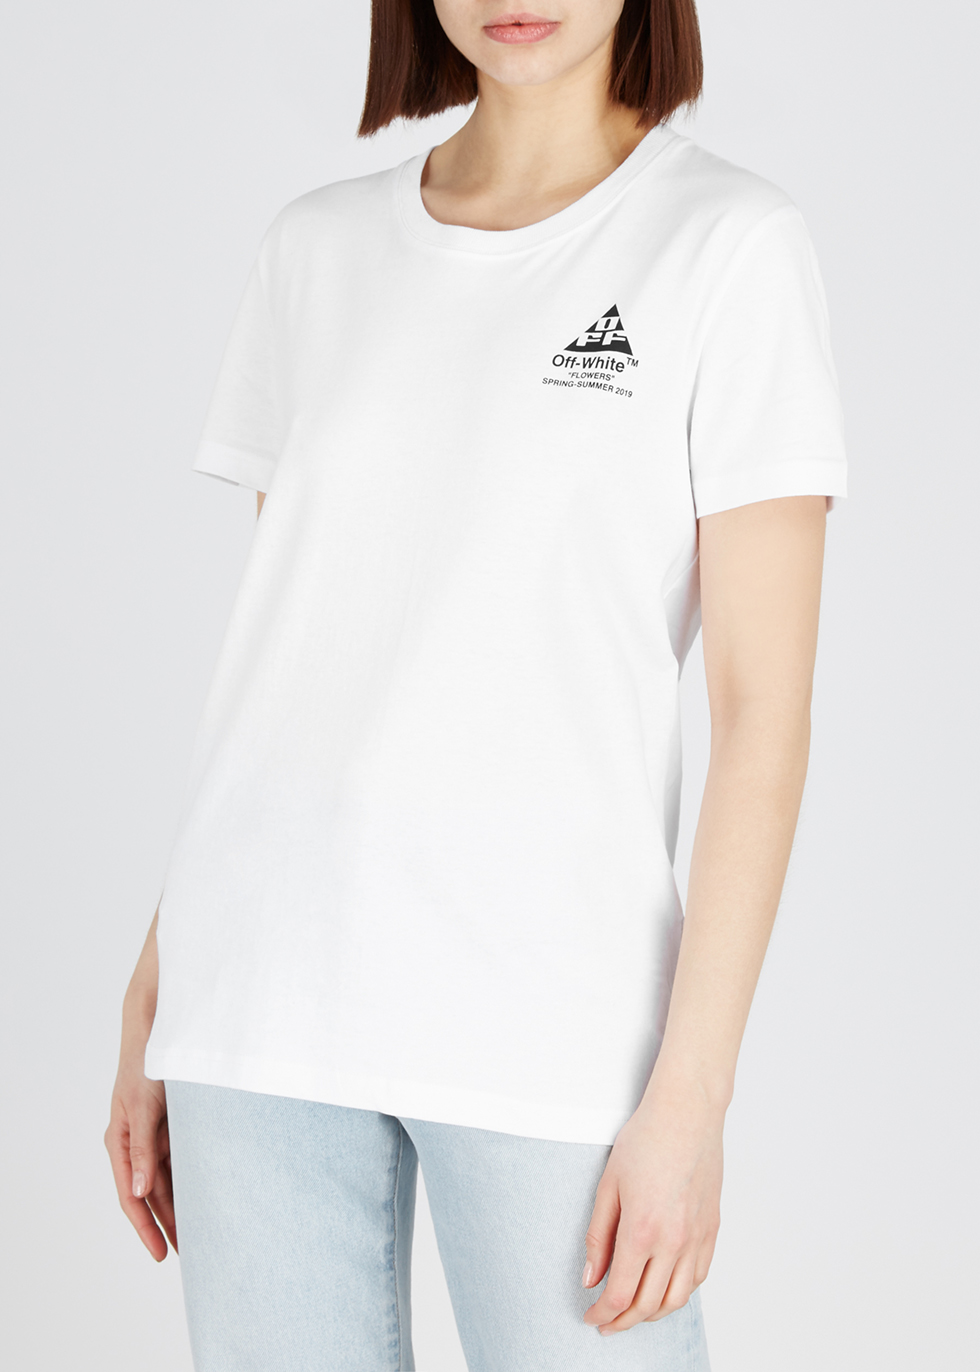 White embellished cotton T-shirt - Off-White